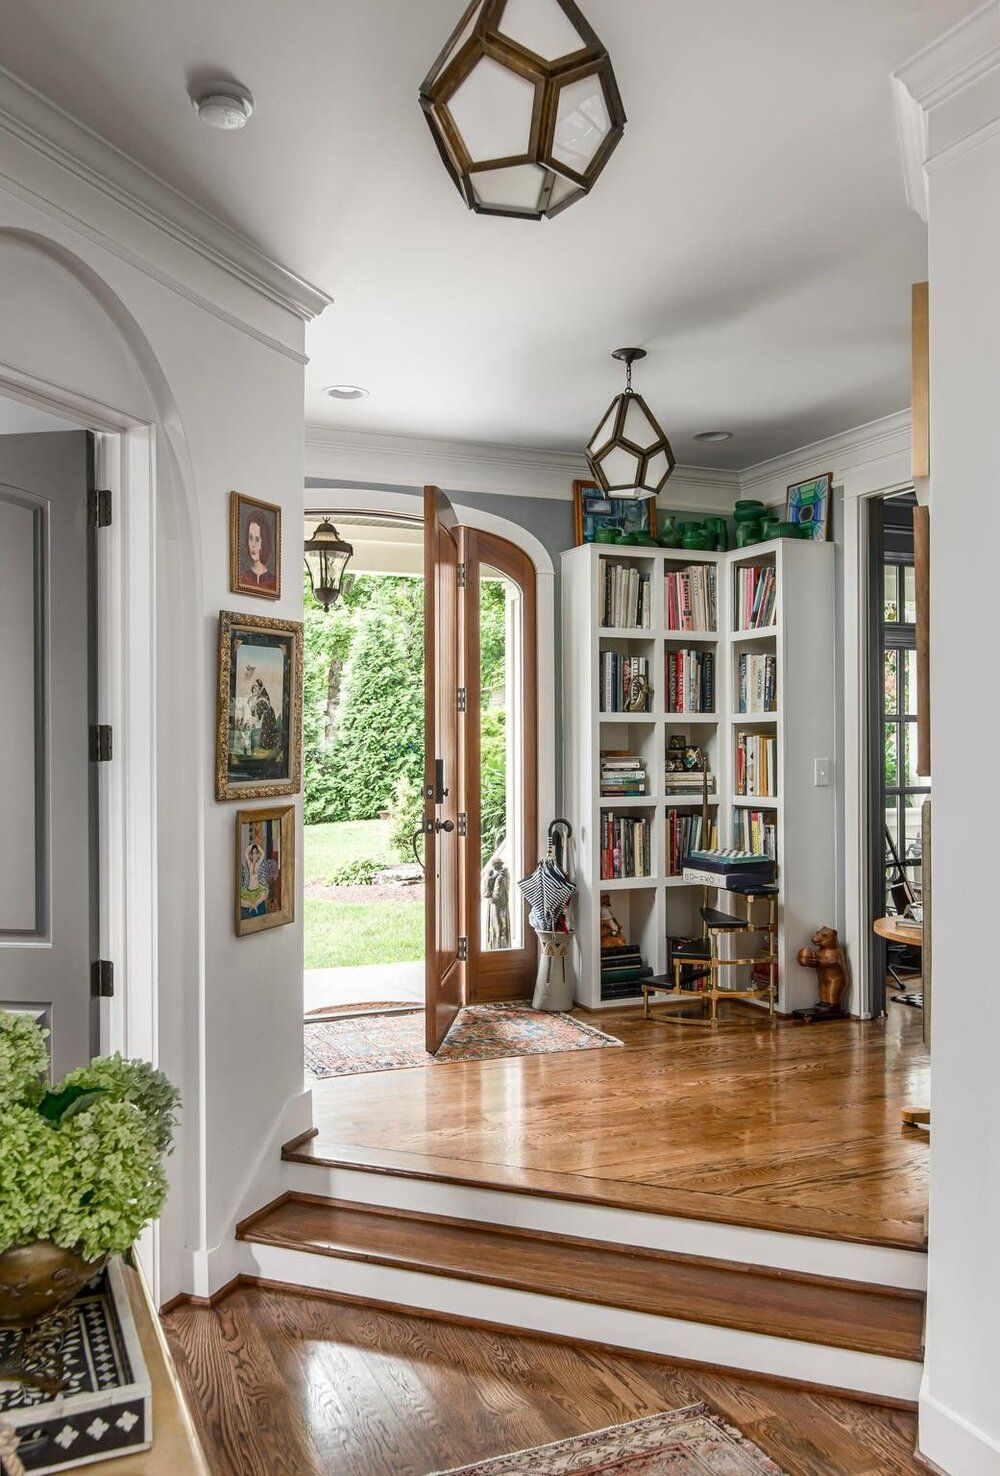 Photo of Louisa Pierce's Vintage Eclectic Nashville Home is For Sale — THE NORDROOM